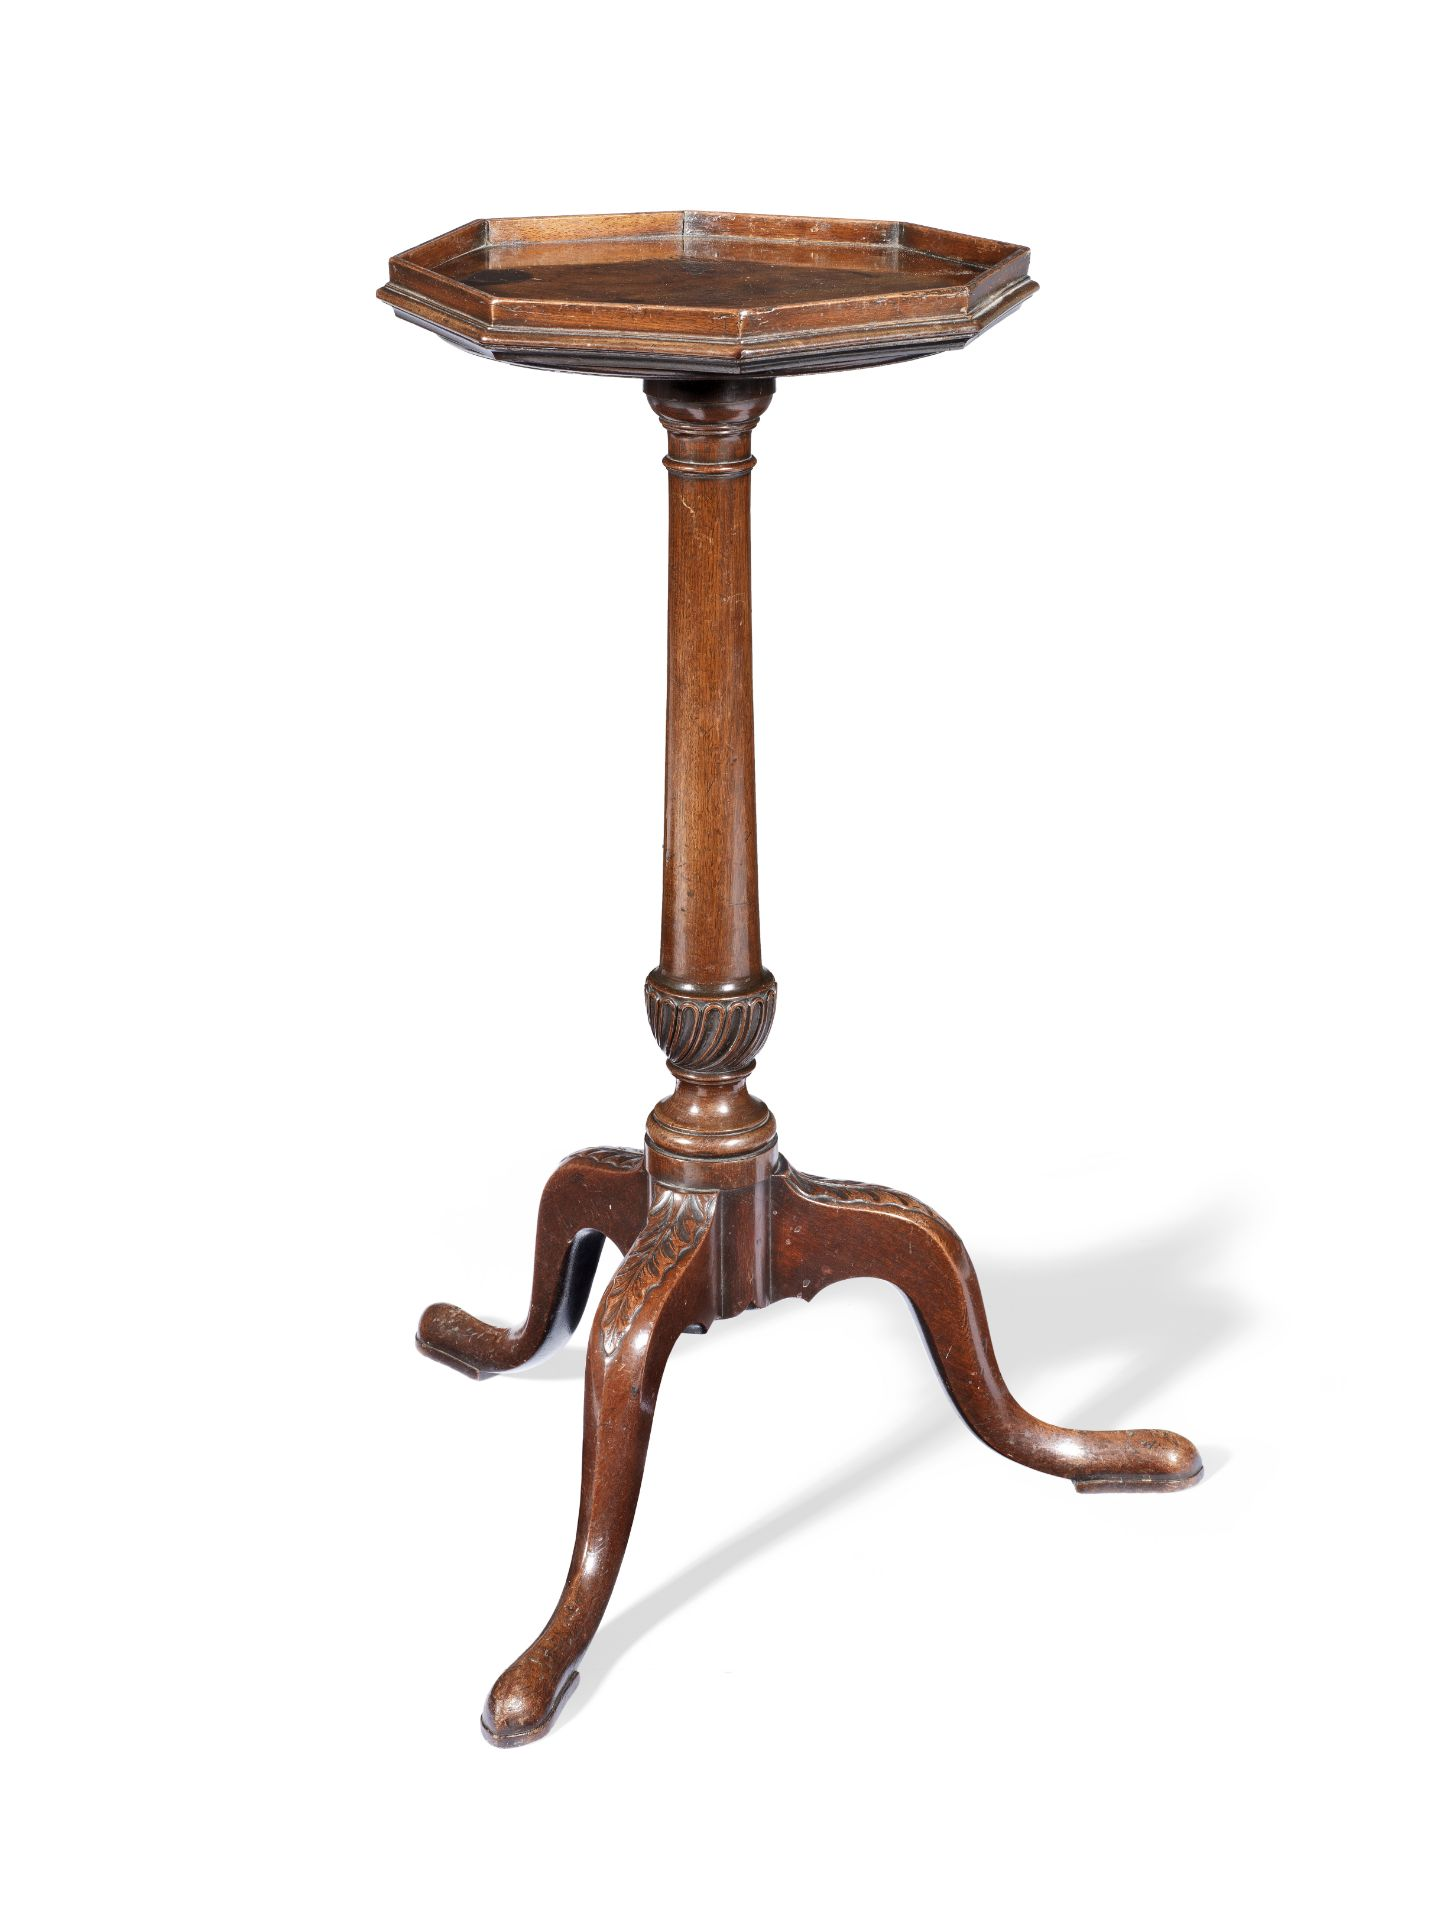 Los 76 - A George III mahogany kettle stand